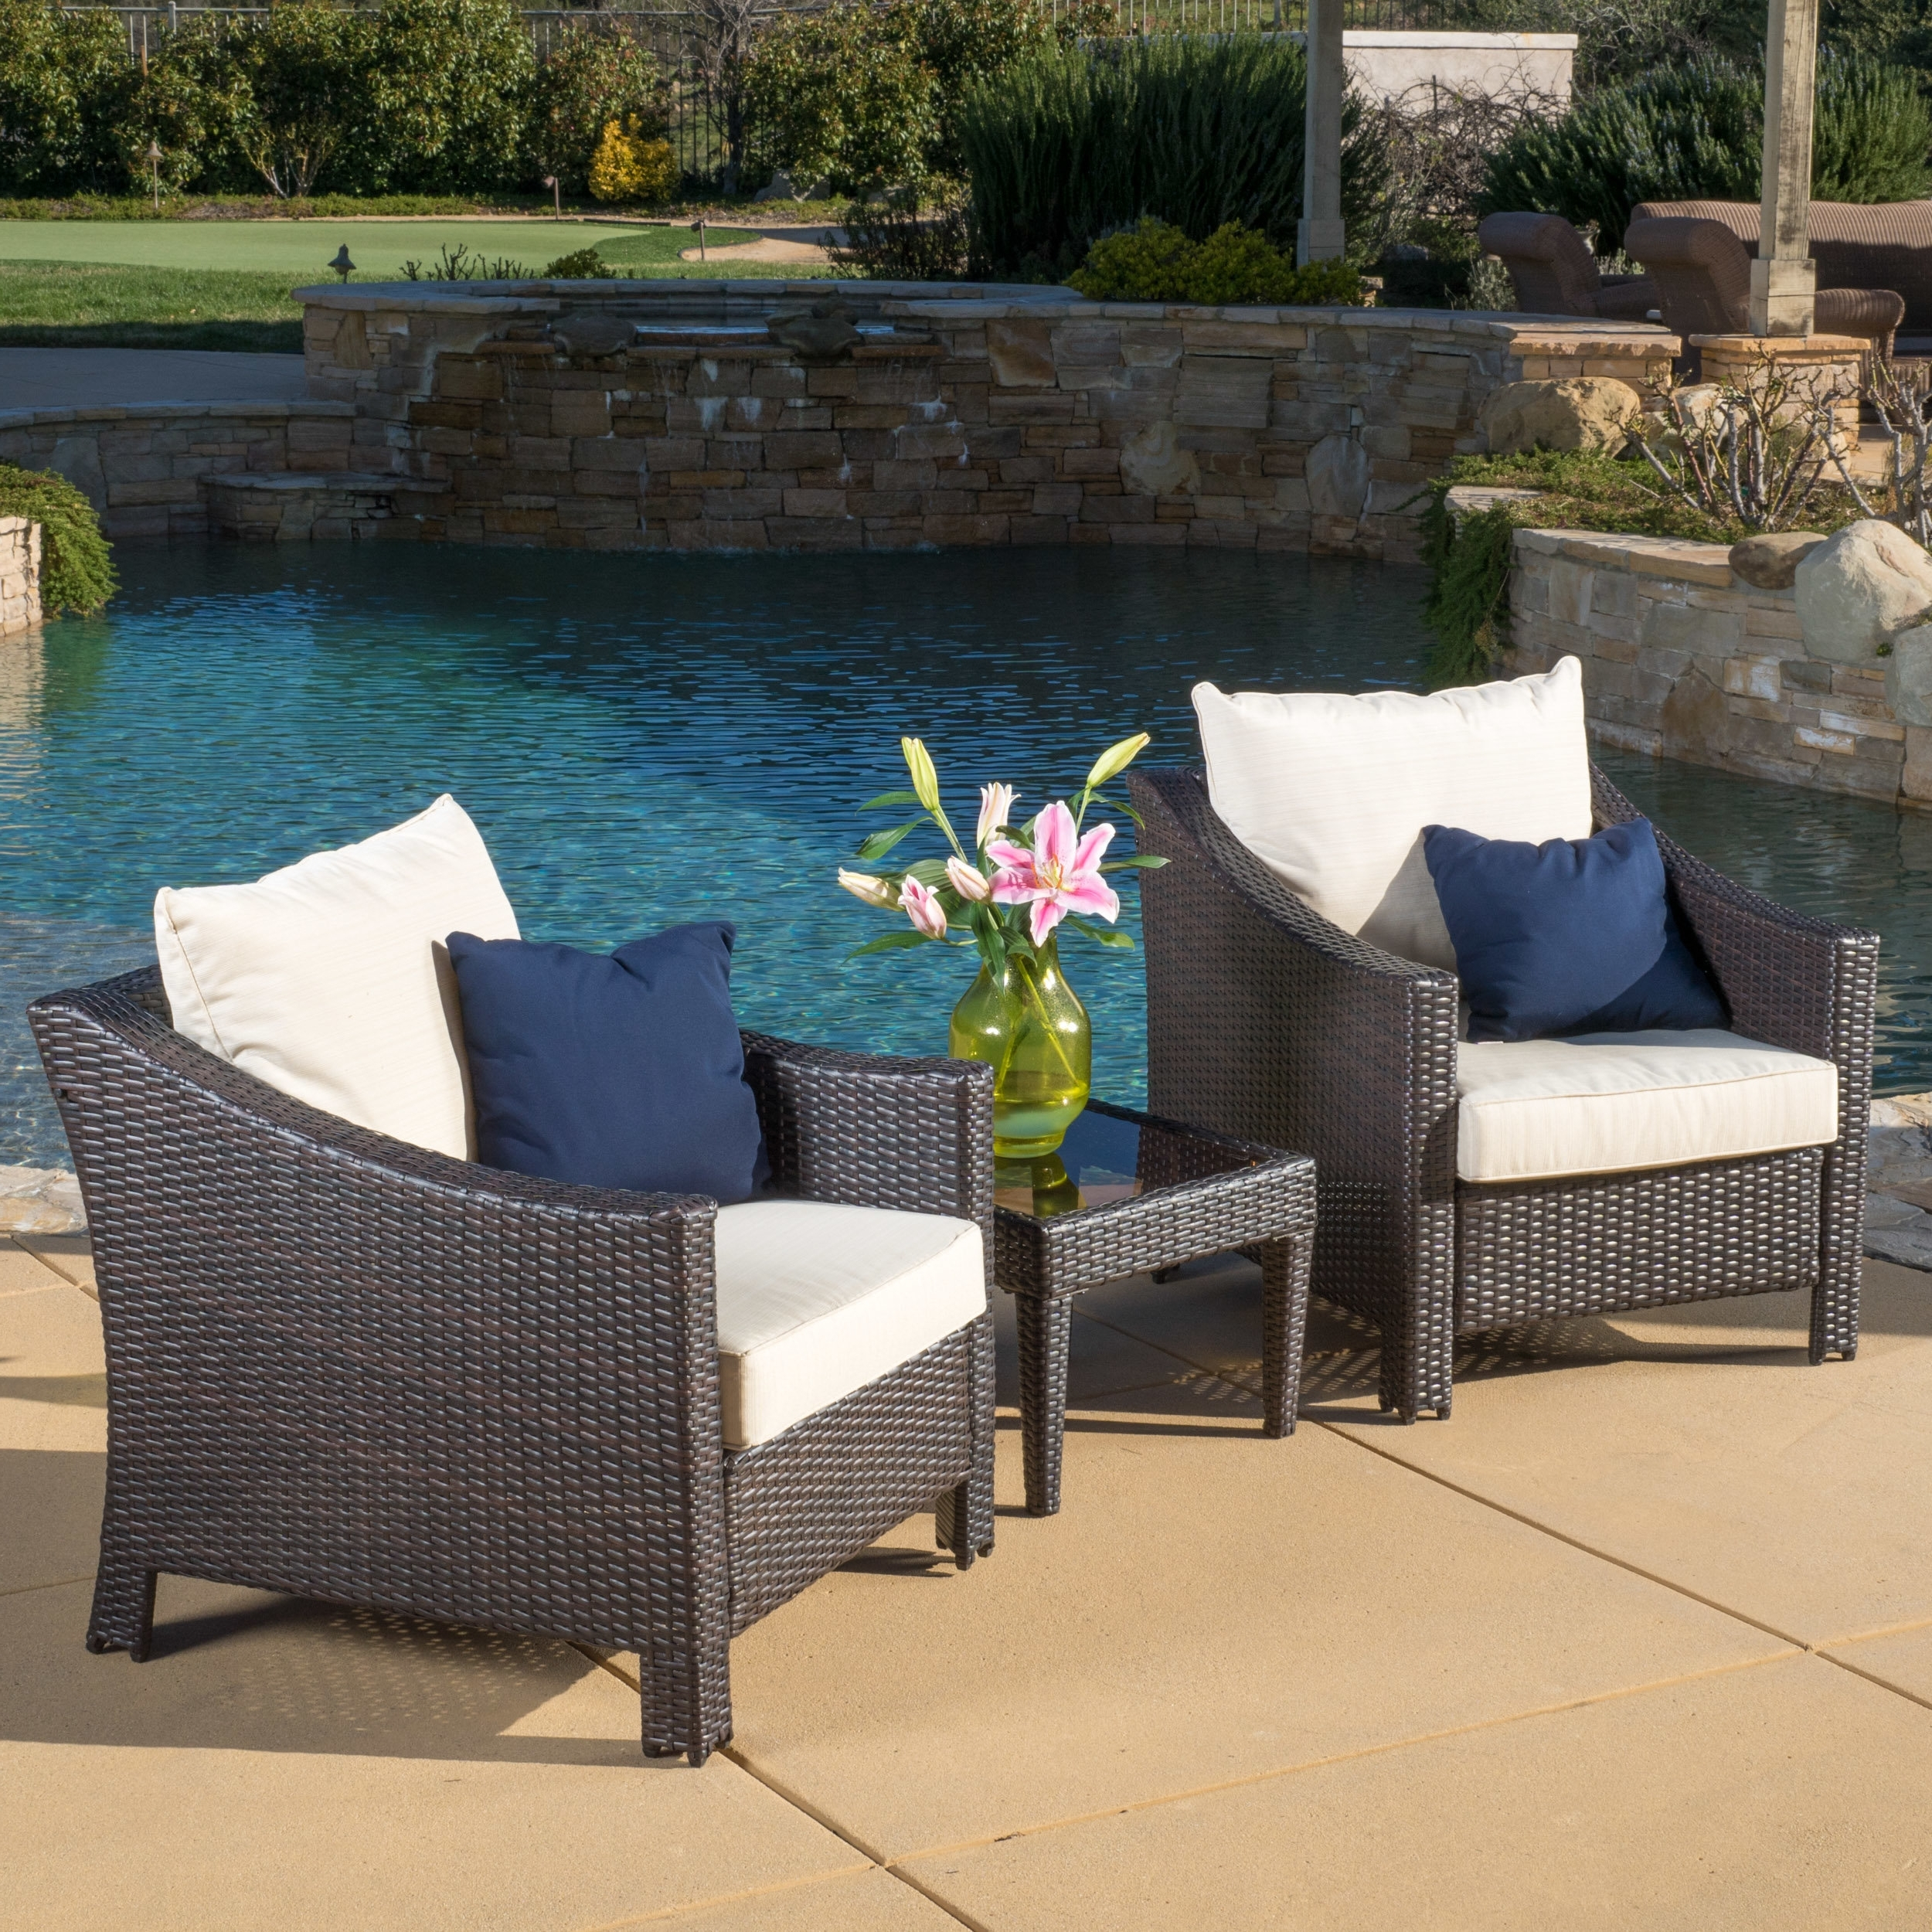 Patio Conversation Sets For Small Spaces Pertaining To Well Known Discount Sling Patio Furniture 4 Piece Wicker Chat Set In Brown (View 11 of 15)